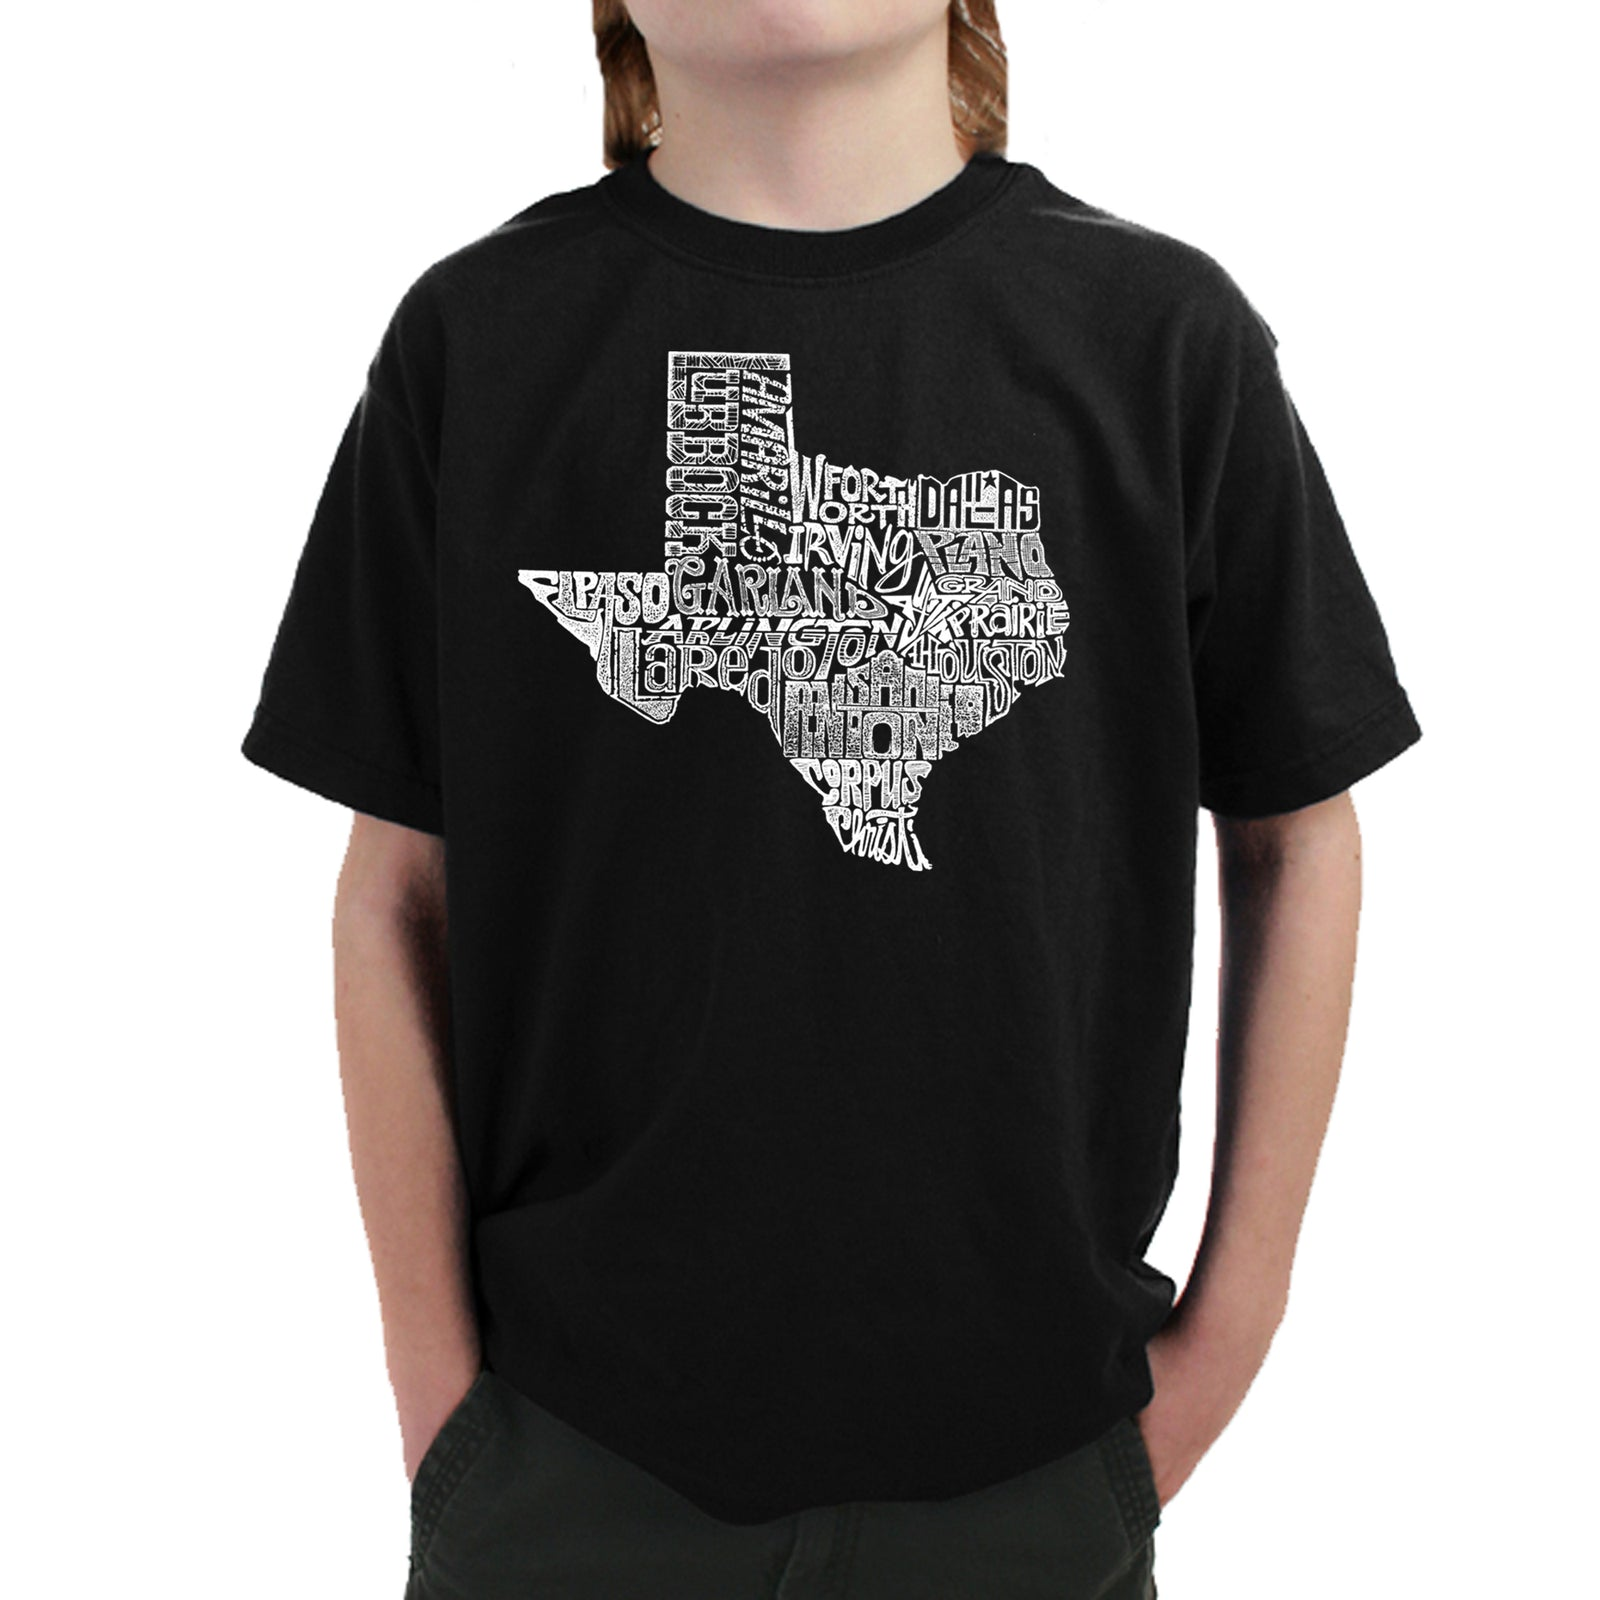 Boy's T-shirt - The Great State of Texas